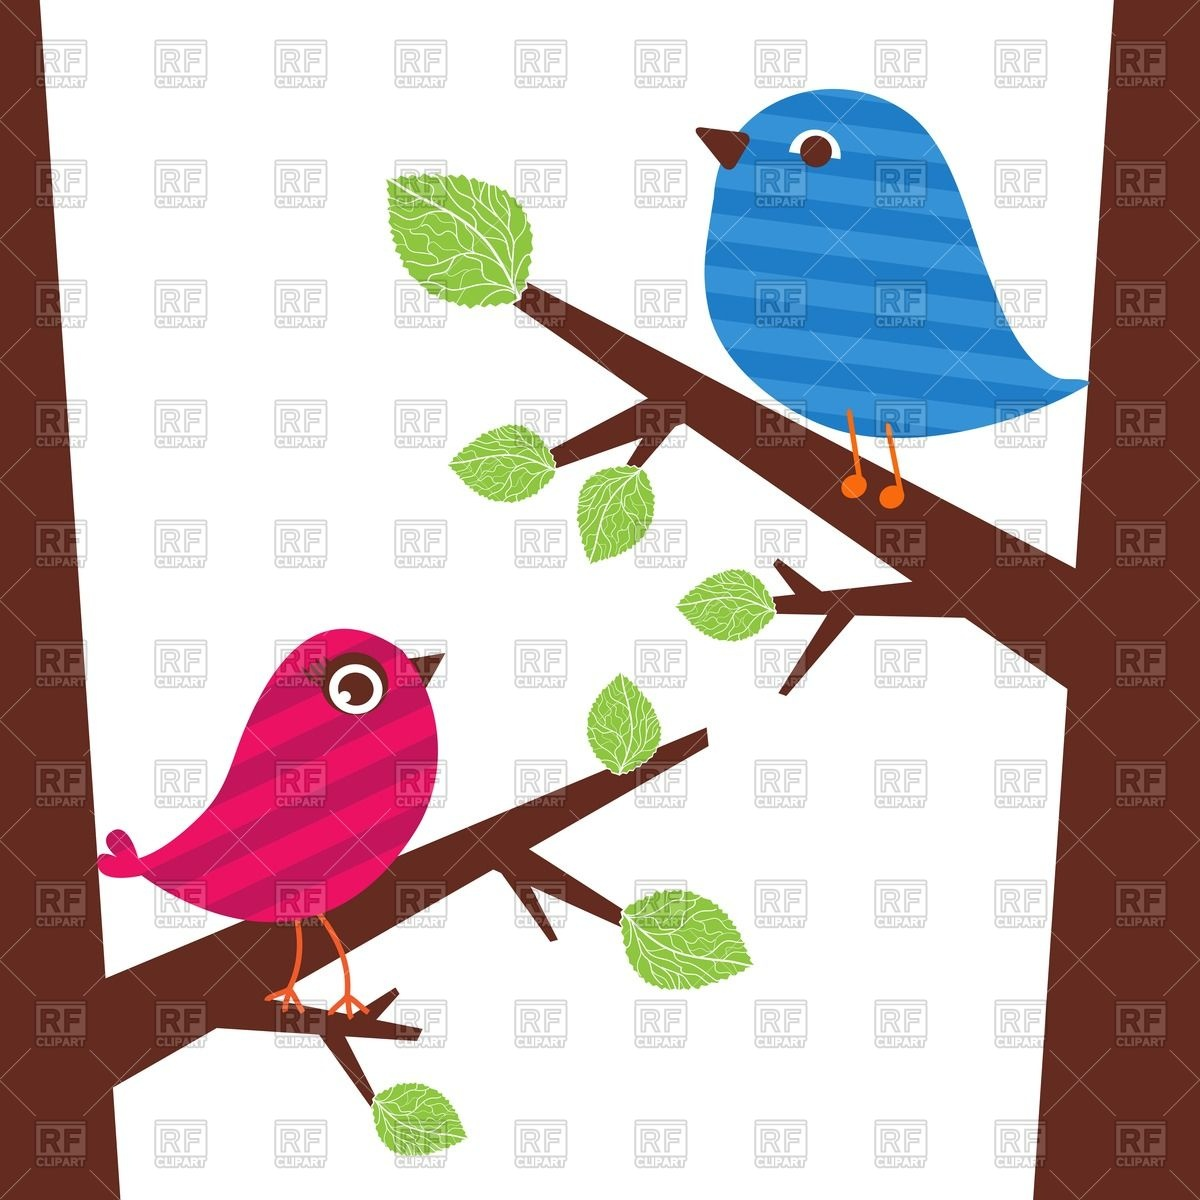 Couple of cute birds sitting on the tree branch Vector Image.